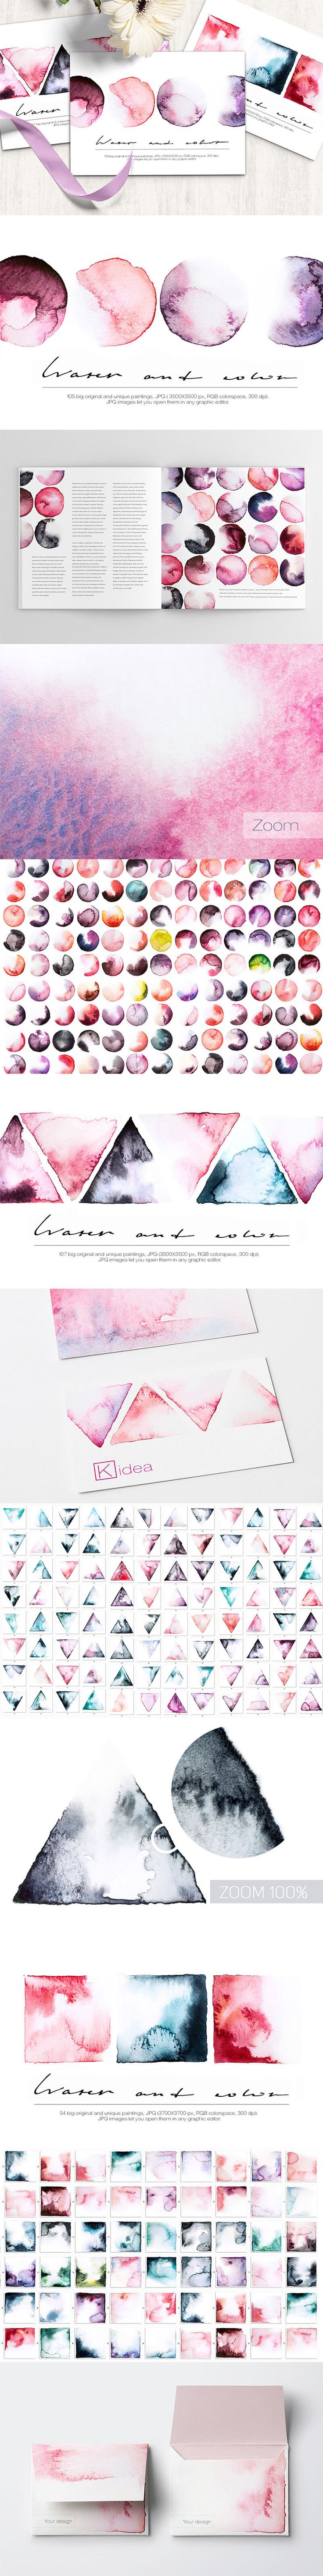 Watercolor Textures Collection